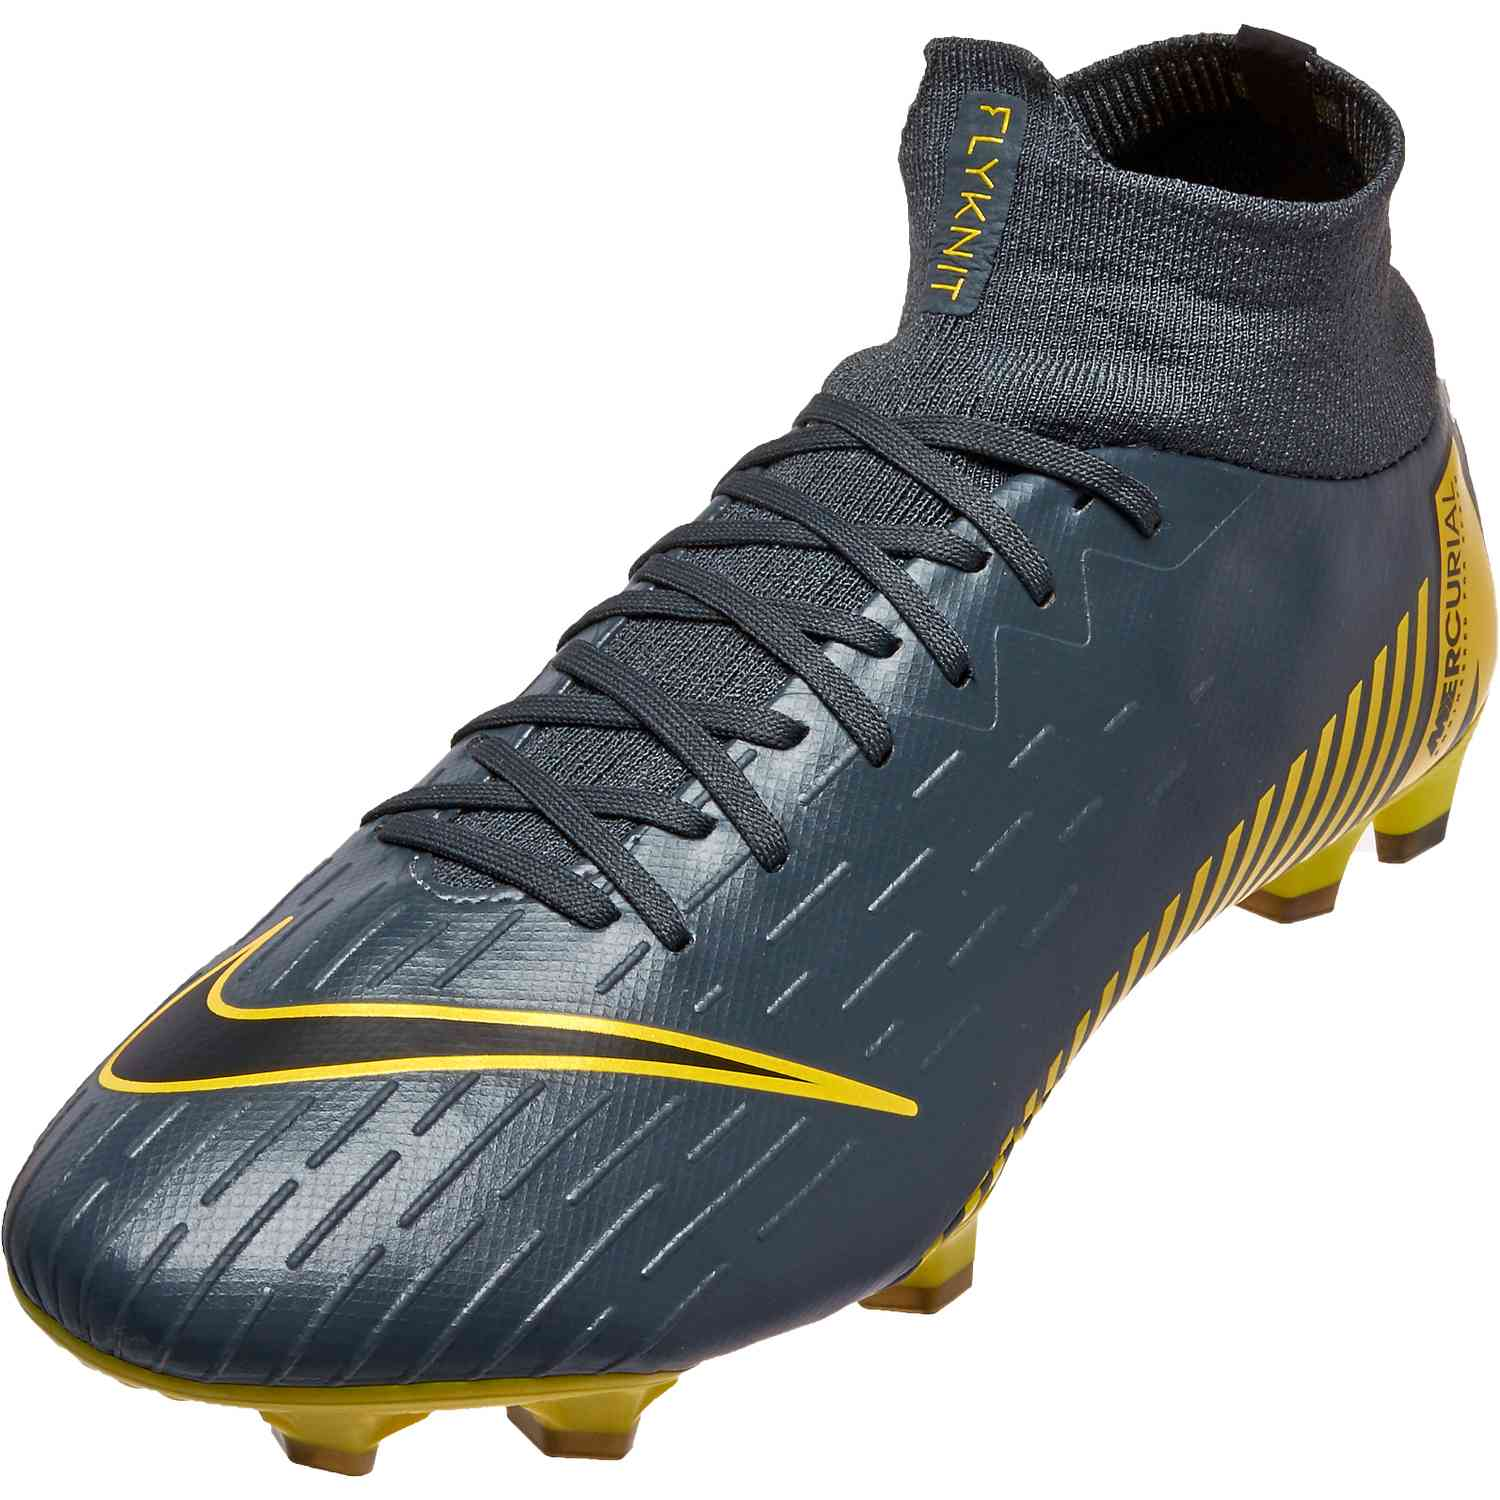 Nike Mercurial Superfly 6 Pro FG - Game